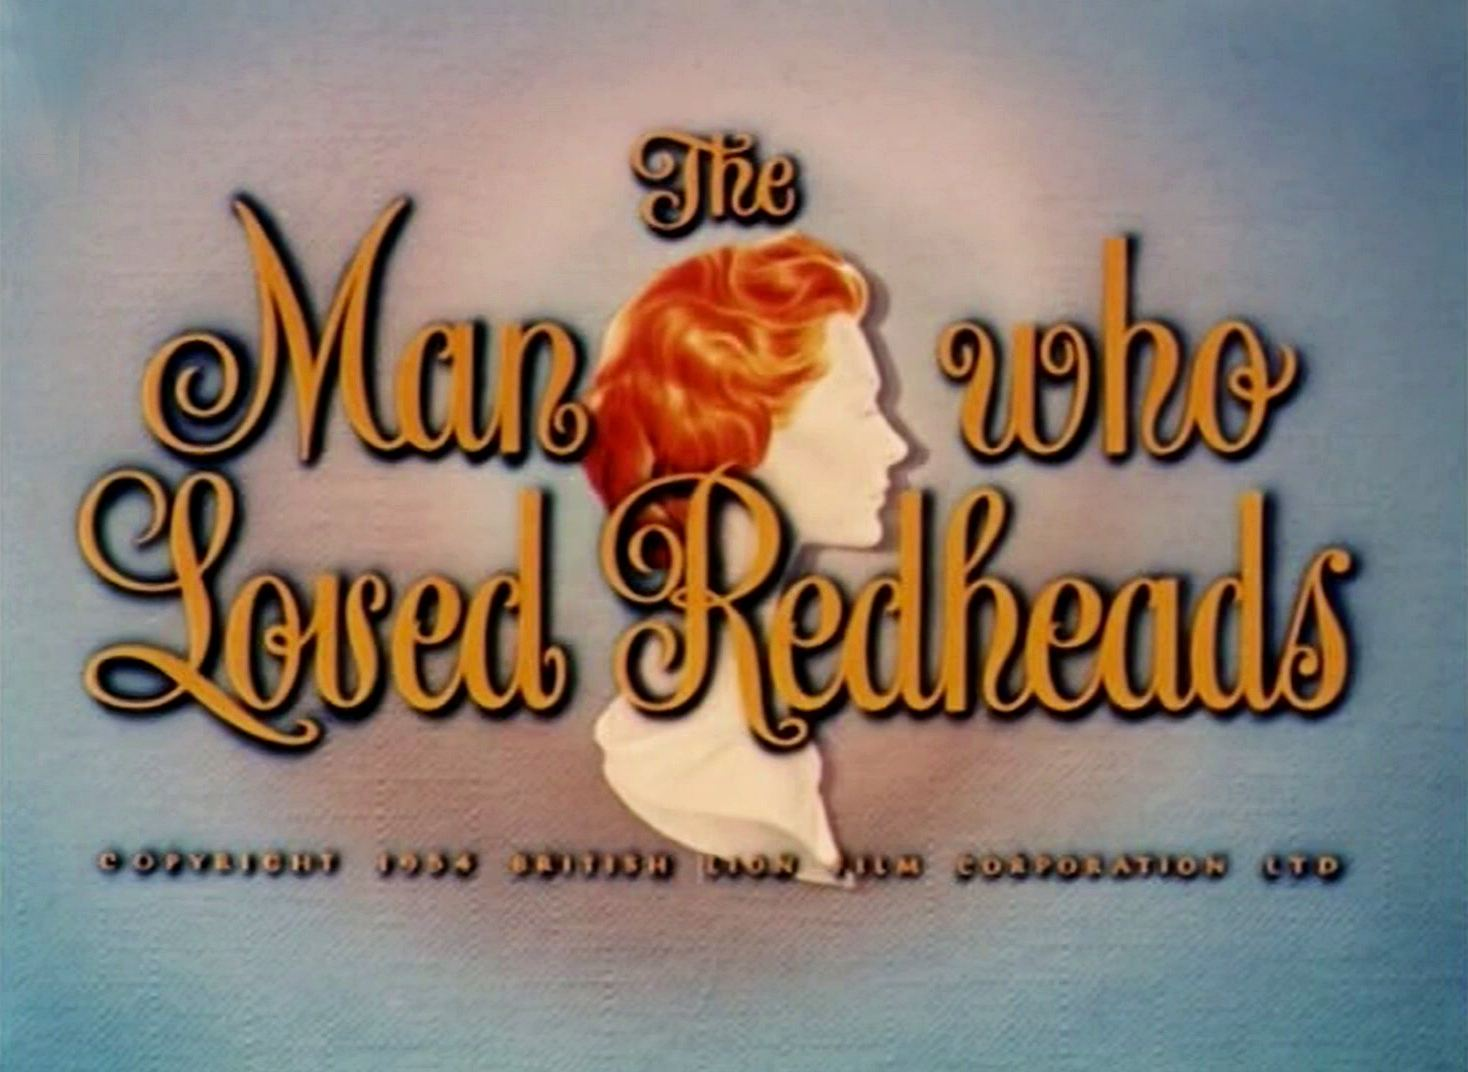 The Man Who Loved Redheads (1955 film)